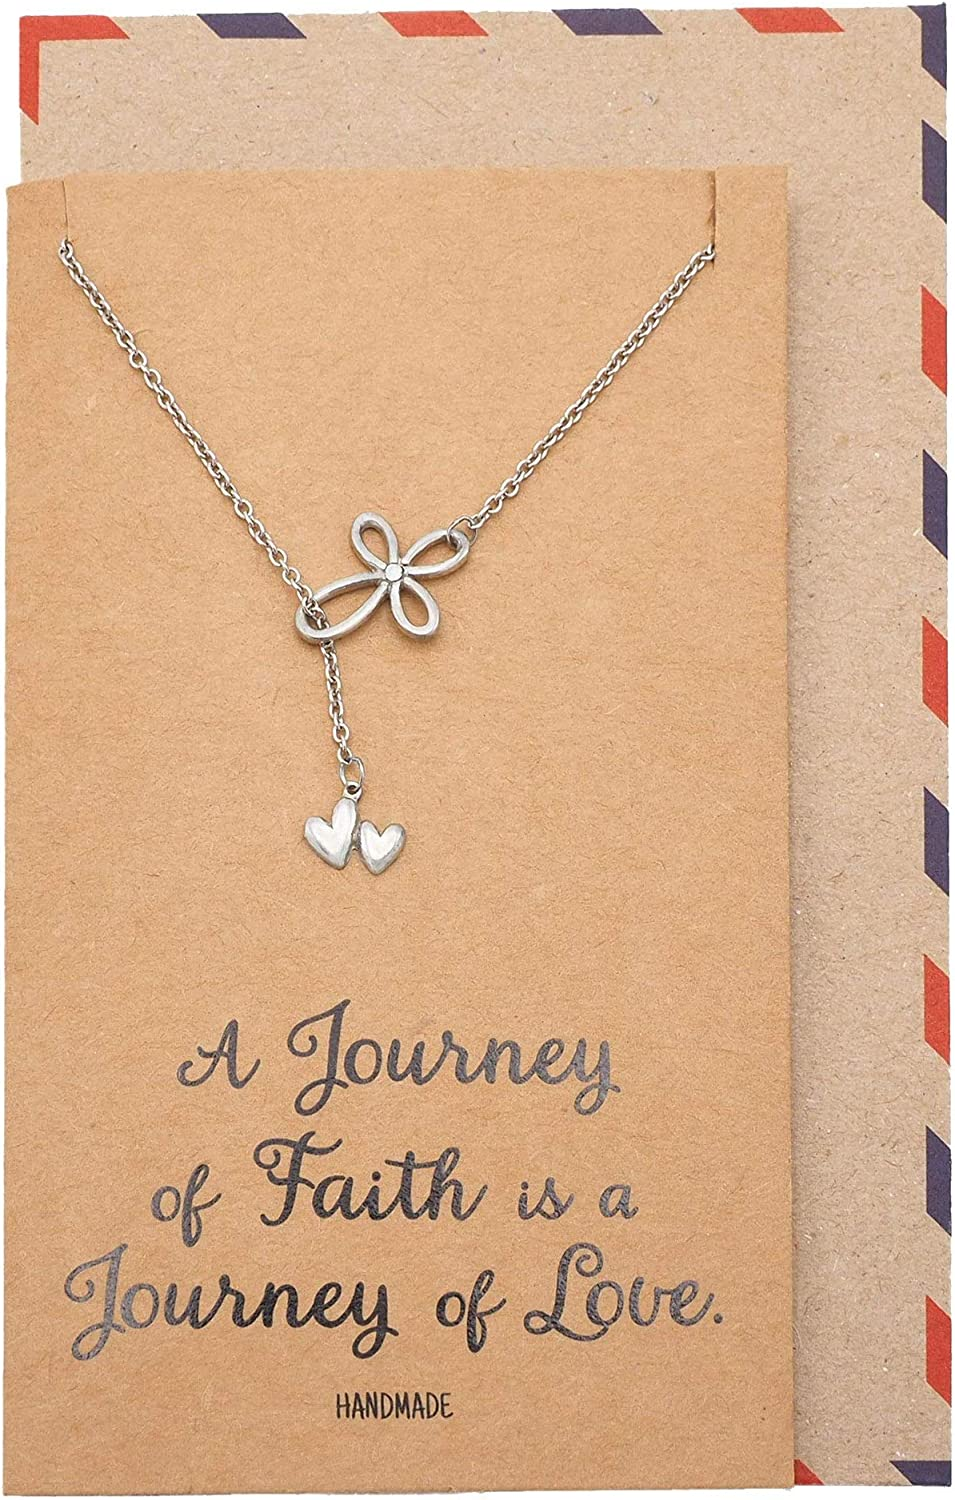 Quan Jewelry Infinity Flowers of Hearts Necklace, 2 Hanging Hearts Pendant, Faith Cross, Greeting Card, 100% Handmade